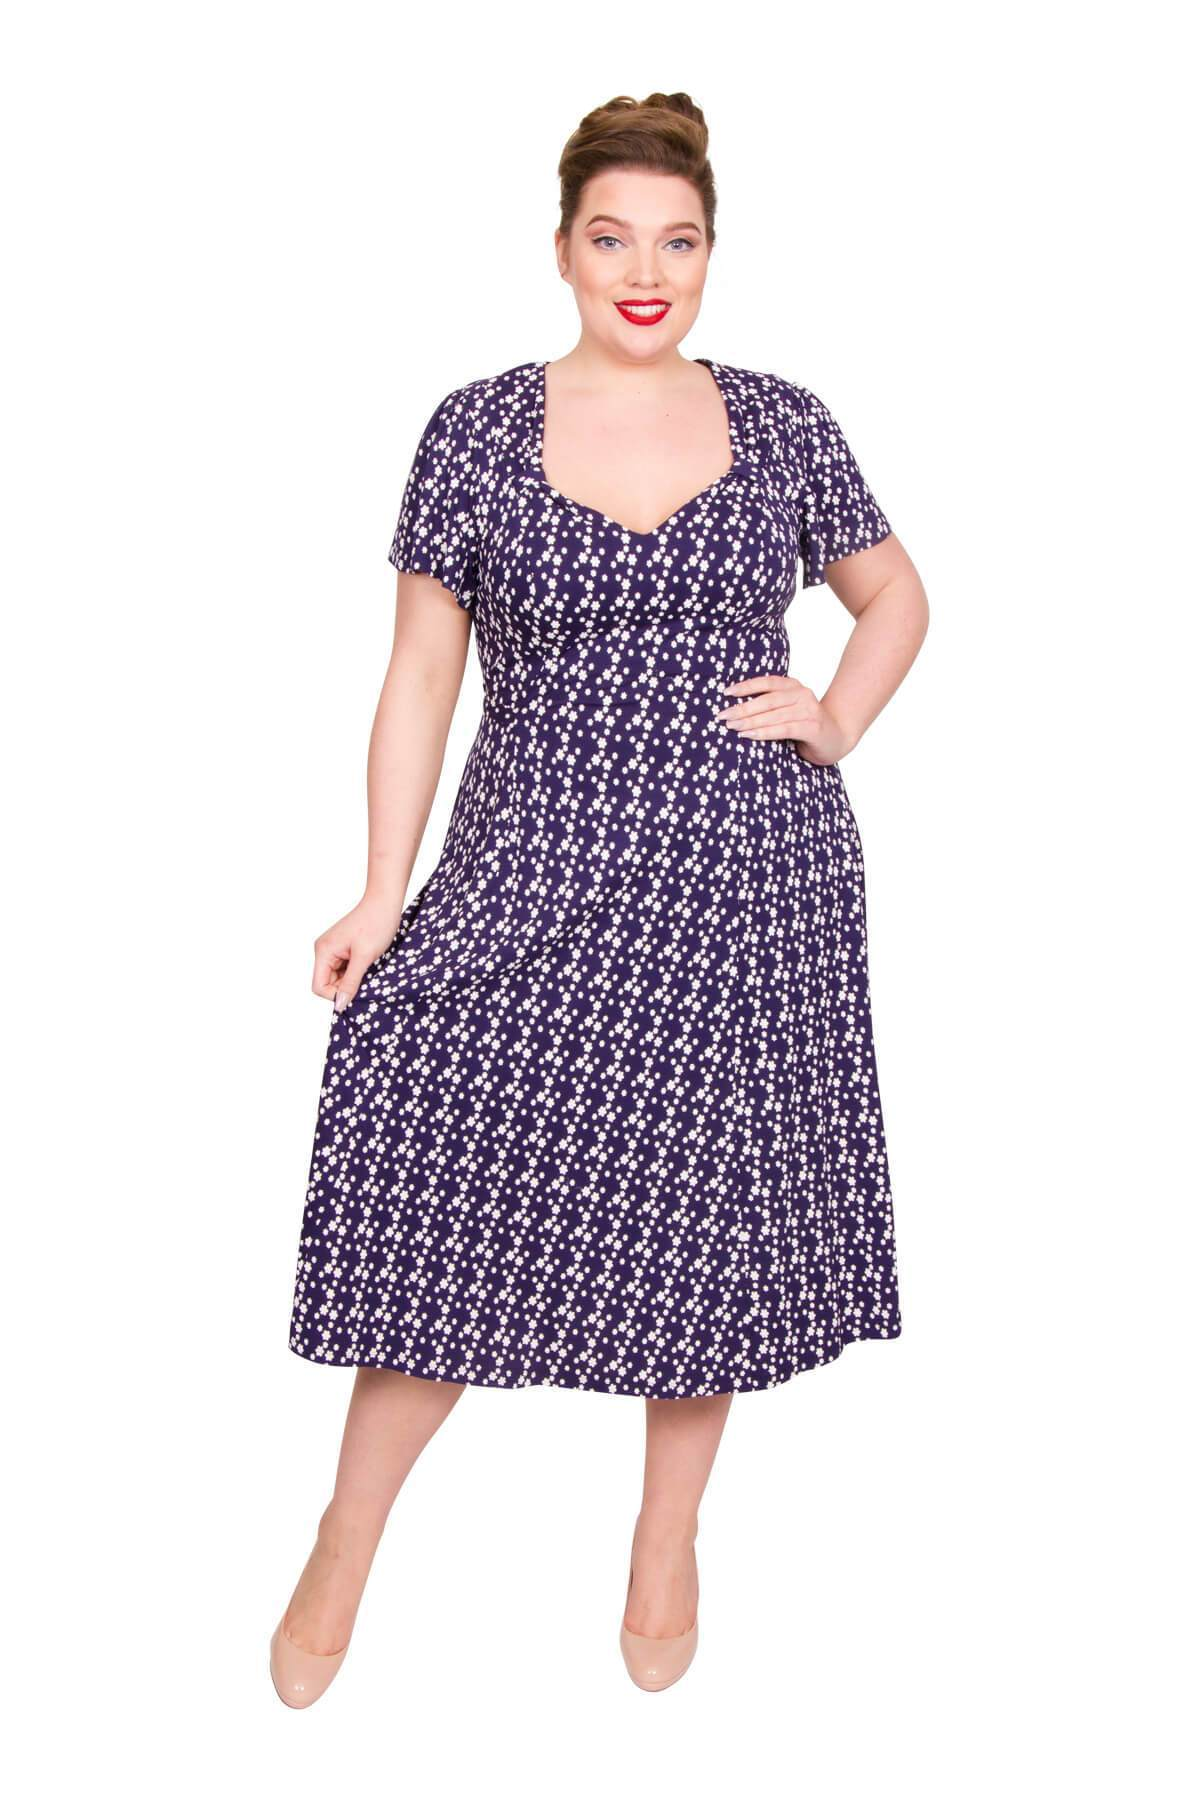 Agent Peggy Carter Costume, Dress, Hats Floral Star 40s Dress - BLUEWHITE  20 £50.00 AT vintagedancer.com